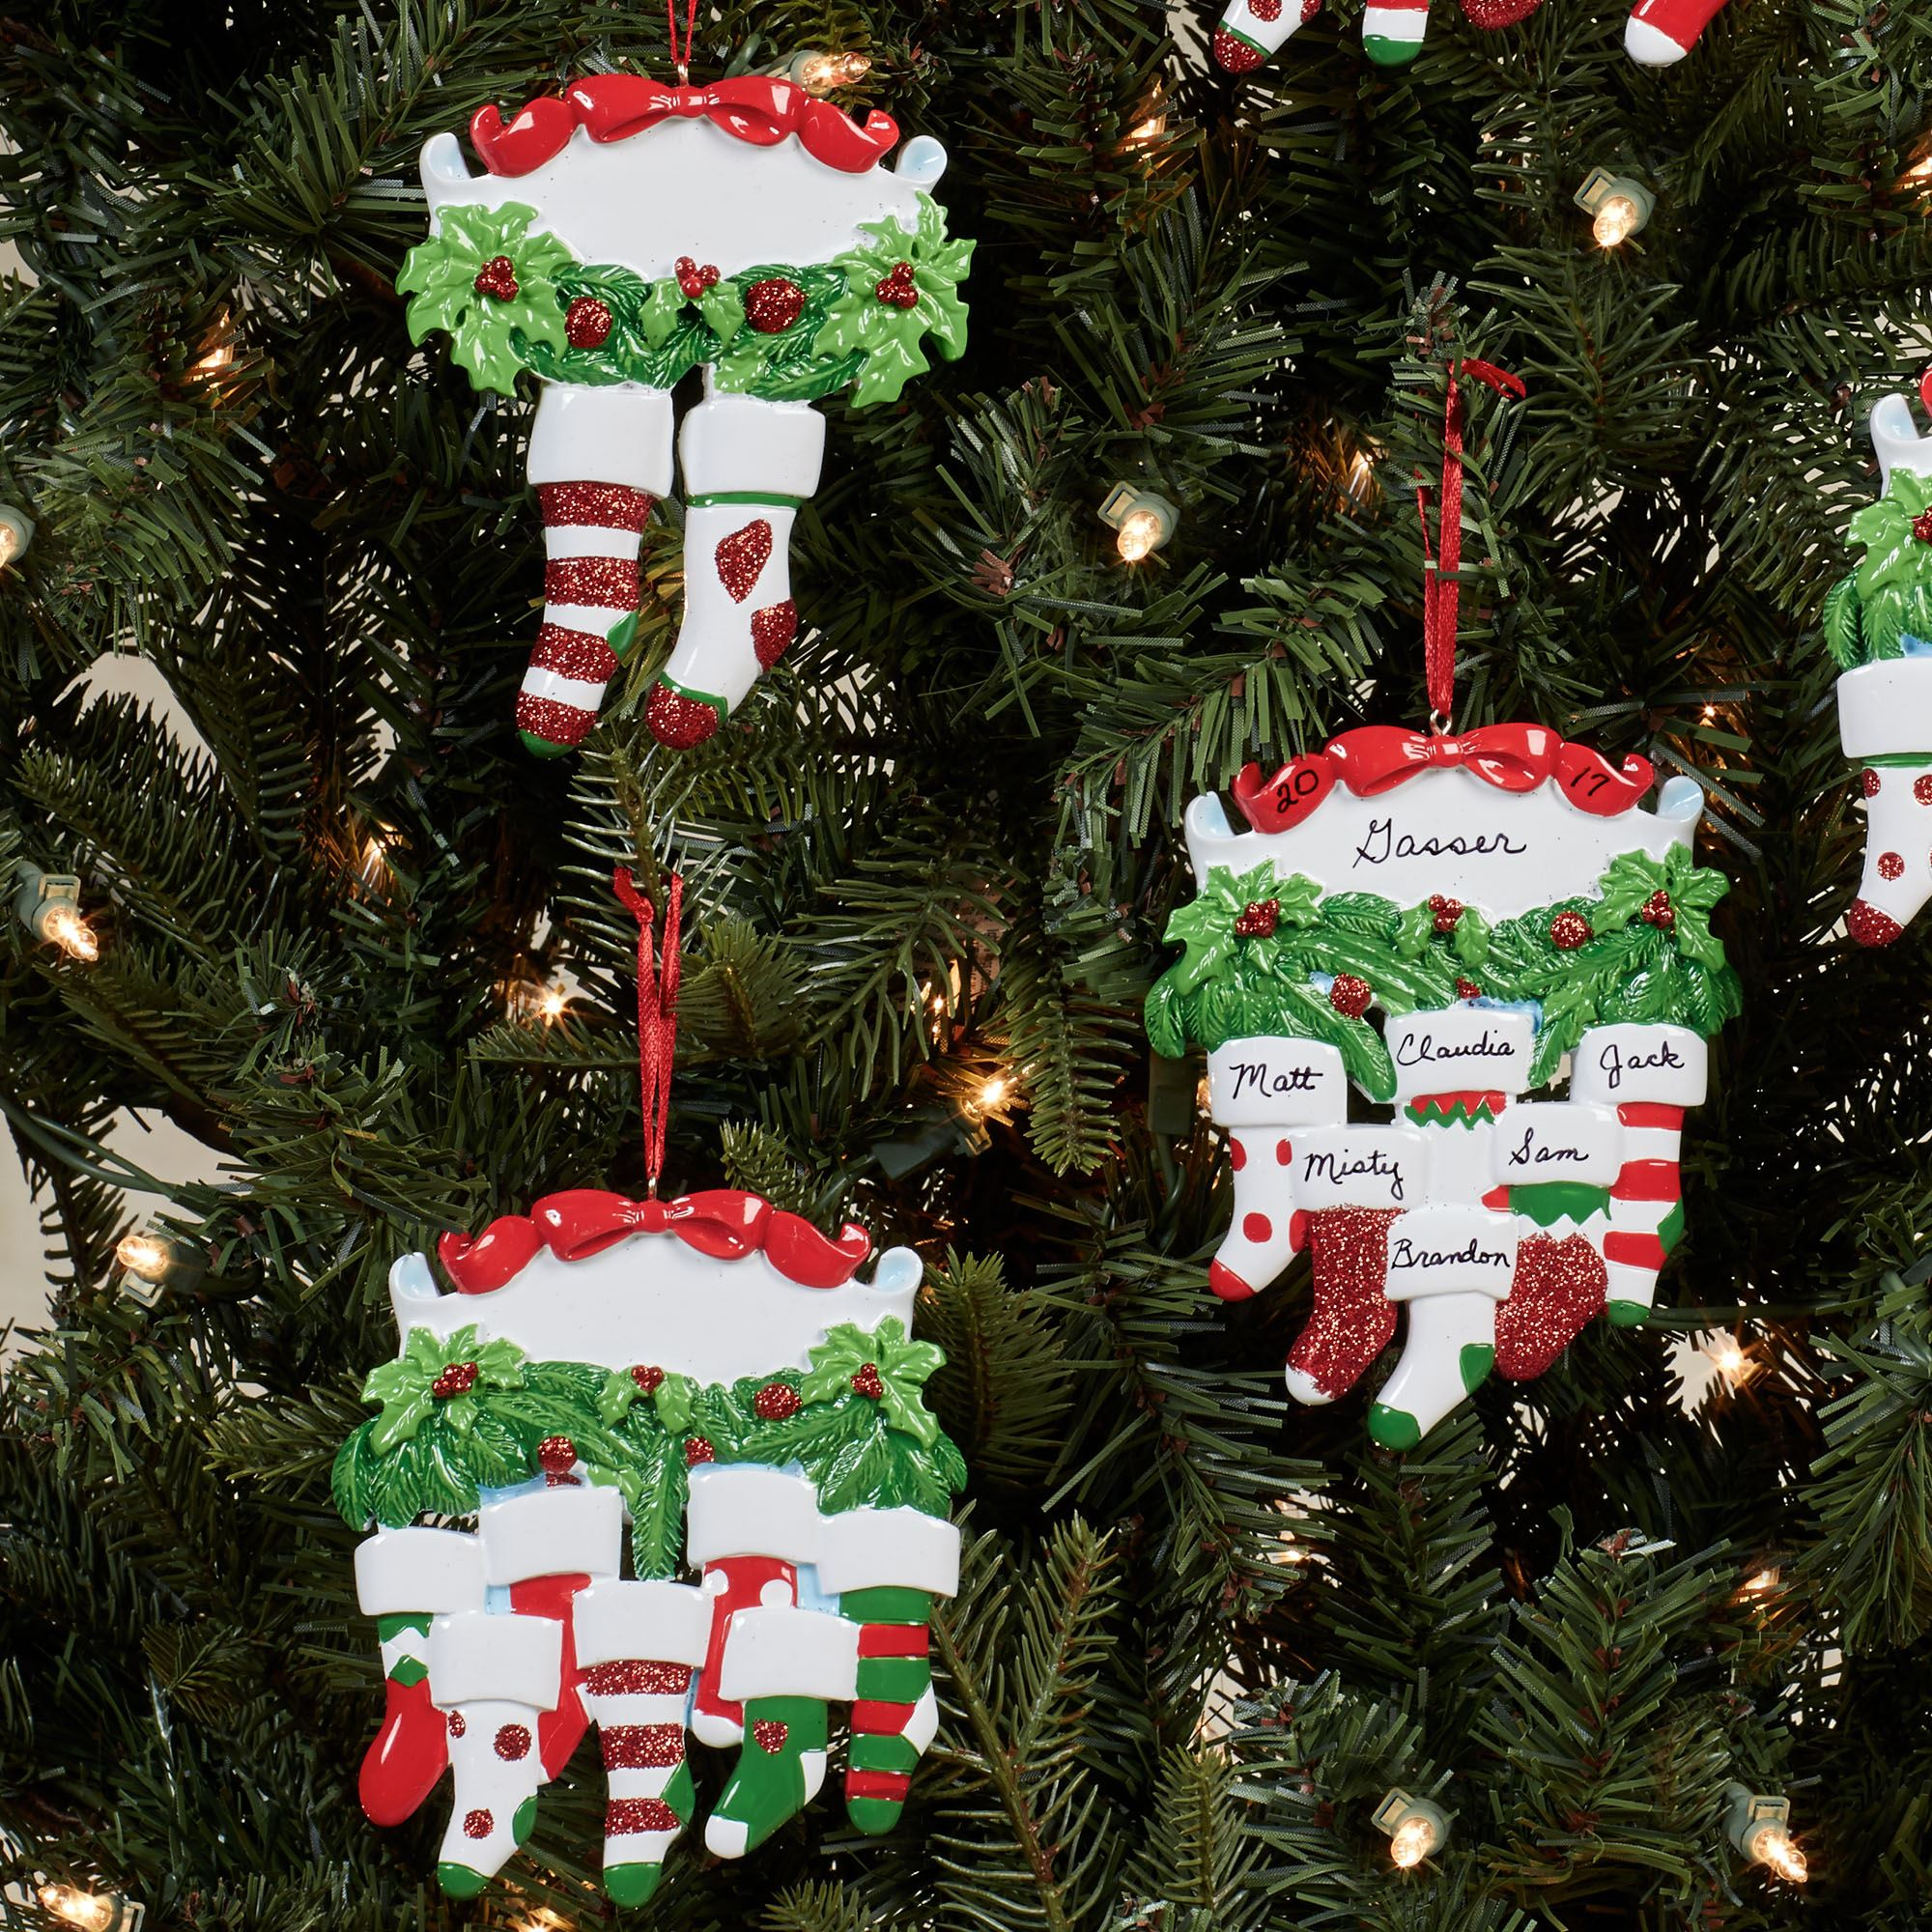 Personalized Christmas Ornament.Holly Adler Stocking Family Personalized Christmas Ornament